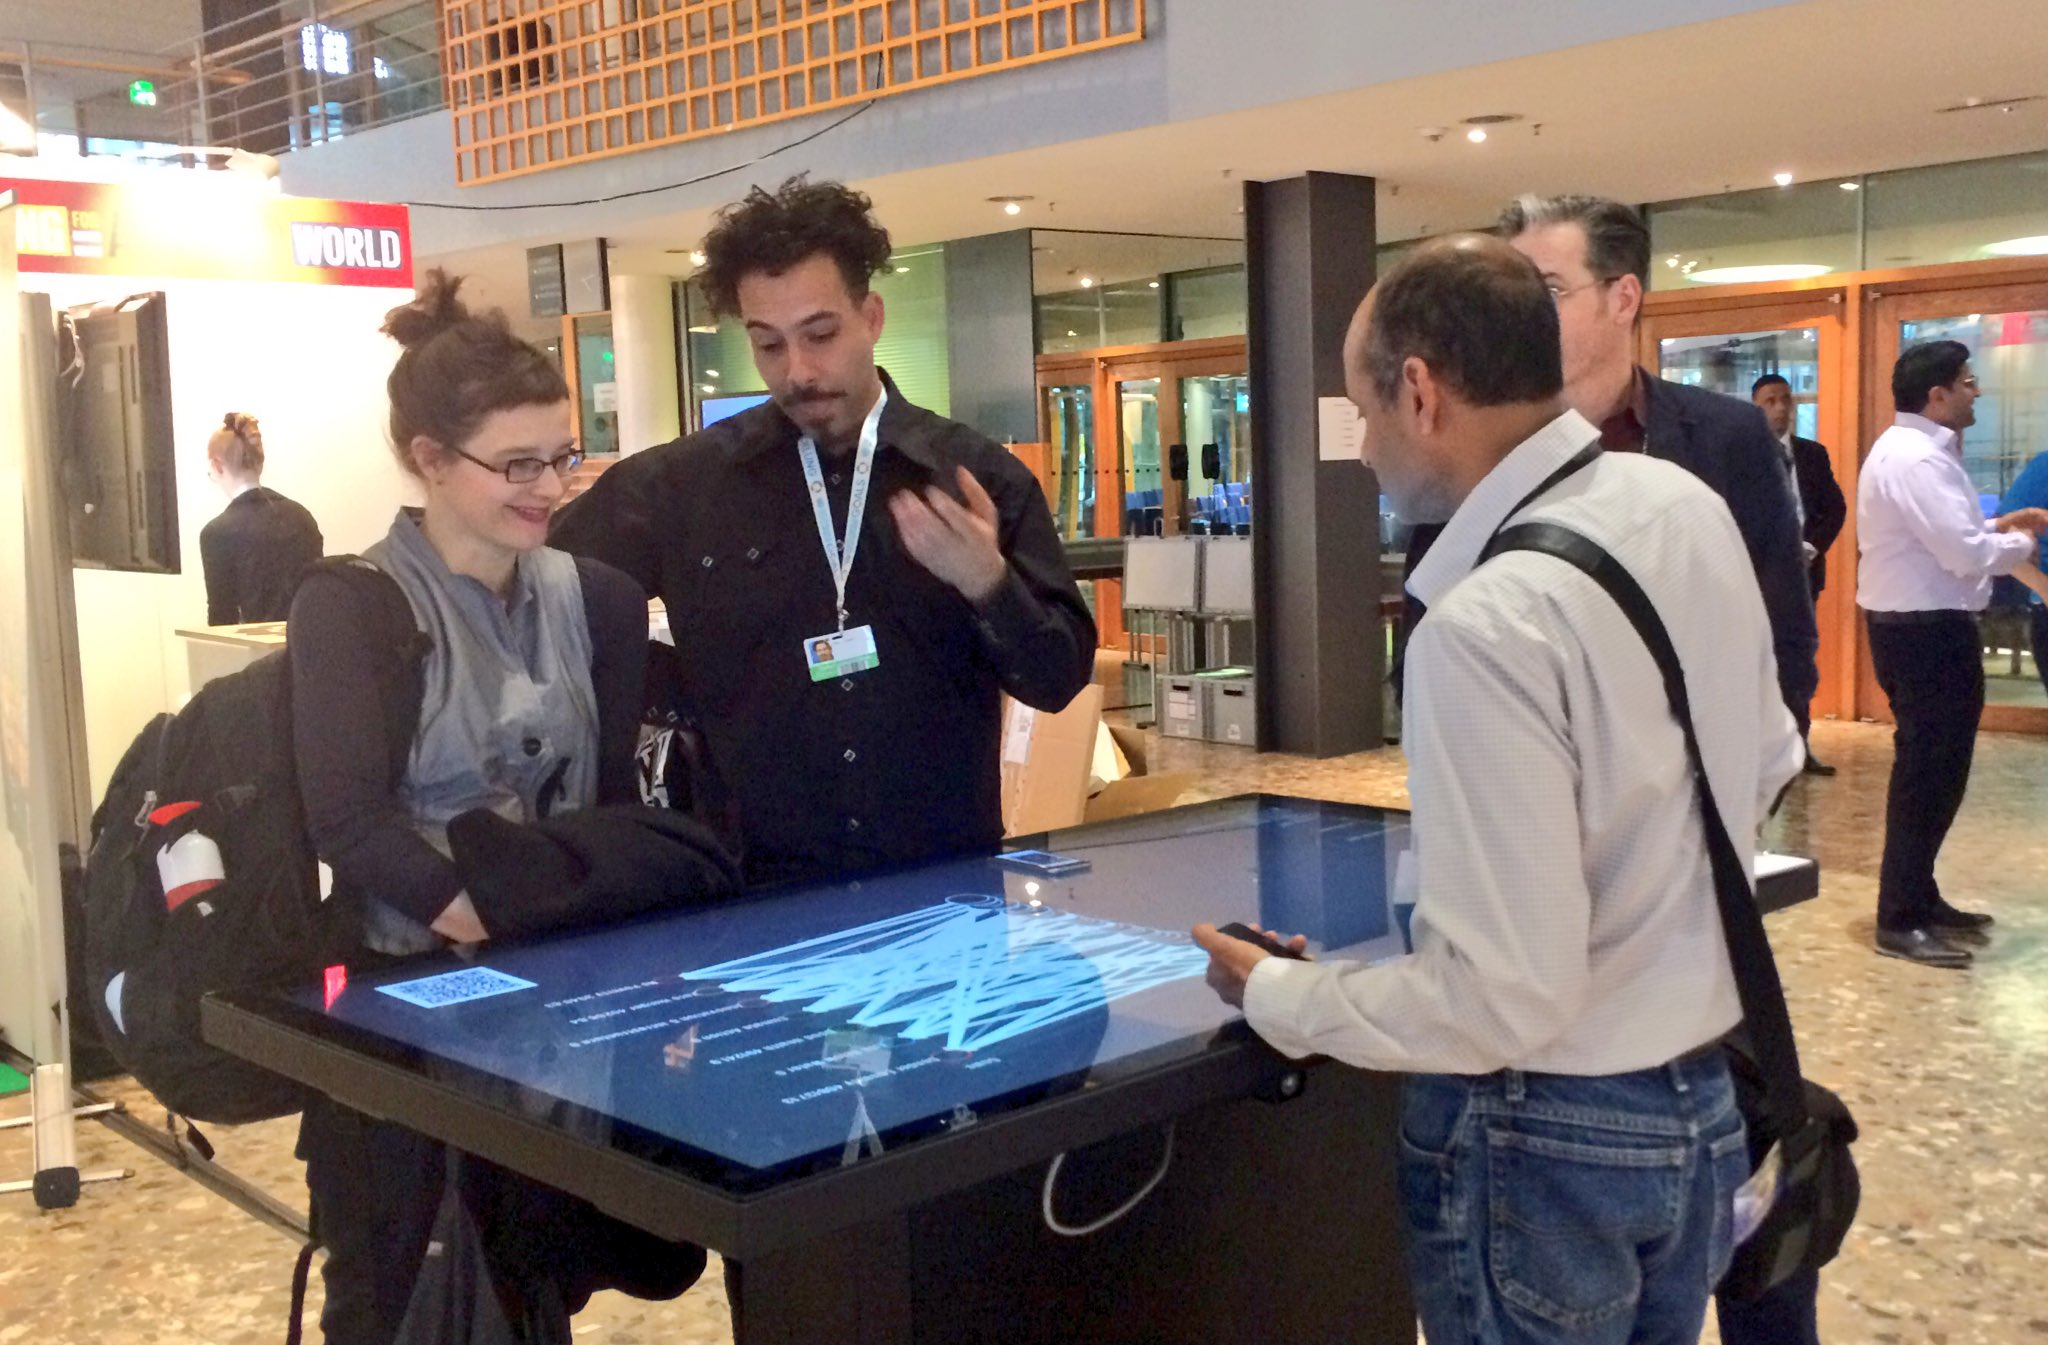 Putting the 'playable' factor into the world's first playable conference... organisers experience the #2030HiveMind policy game at #GFI4SD. https://t.co/EjnpSJPmJA